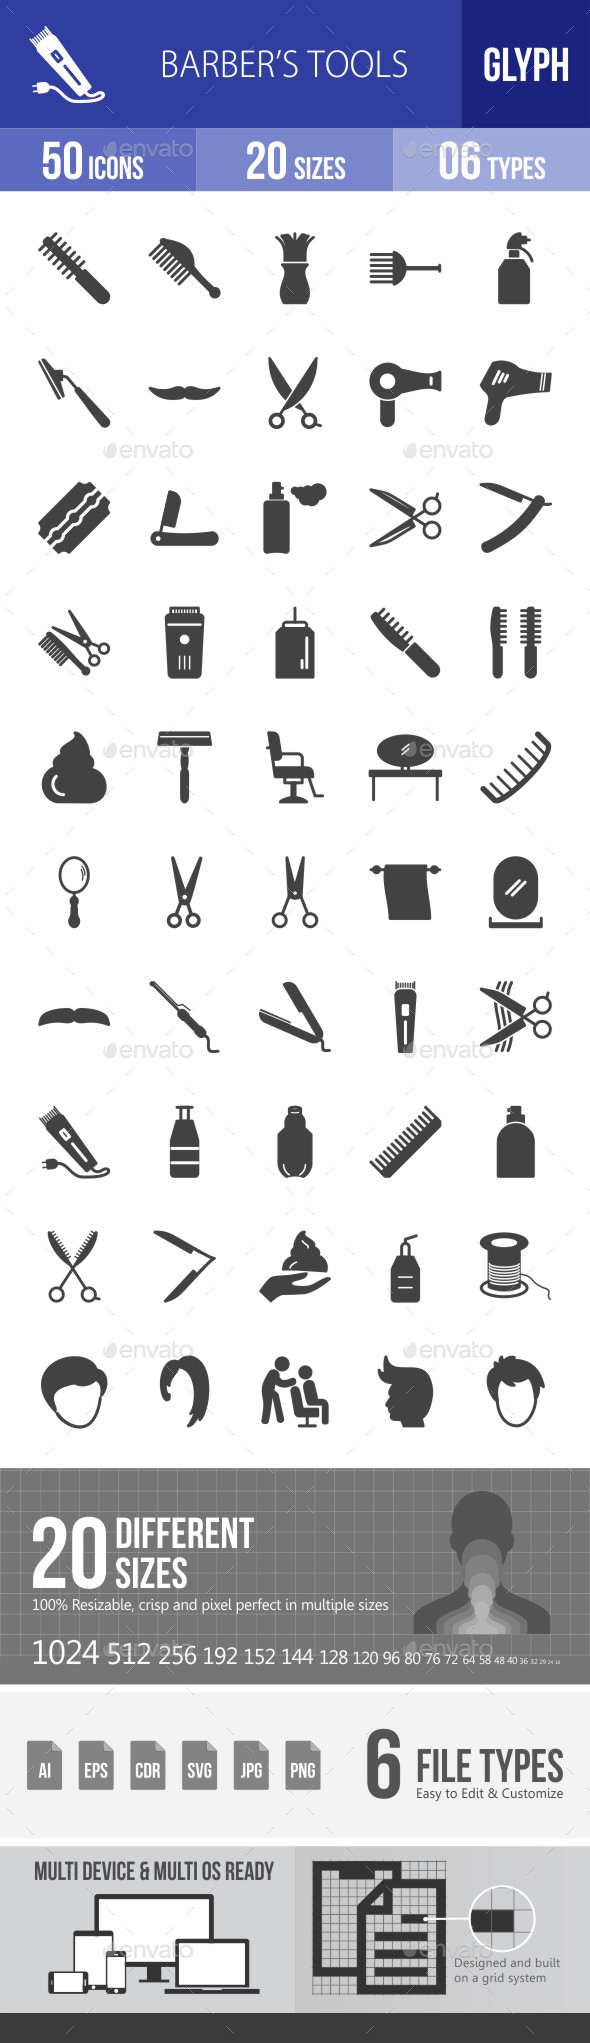 Barber's Tools Glyph Icons - Icons